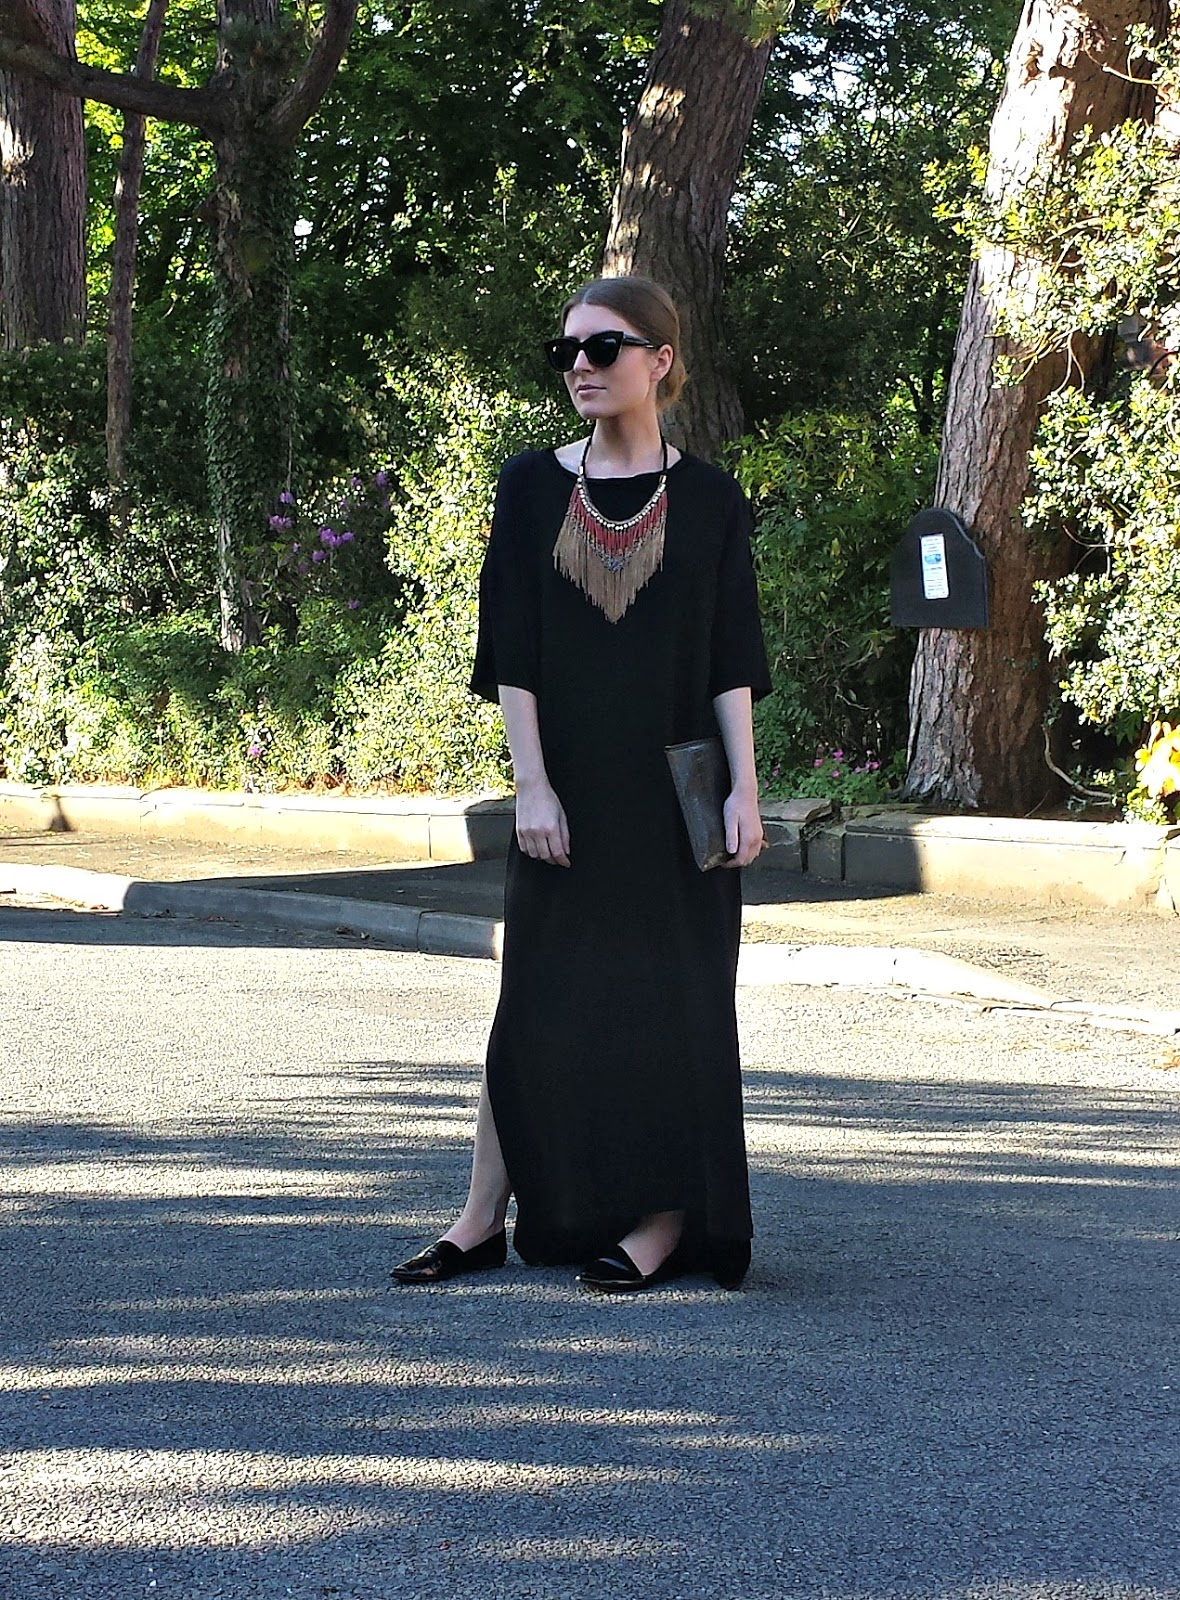 ec656dc2196 Style Trunk   Outfit  Black Maxi Dress and Statement Necklace